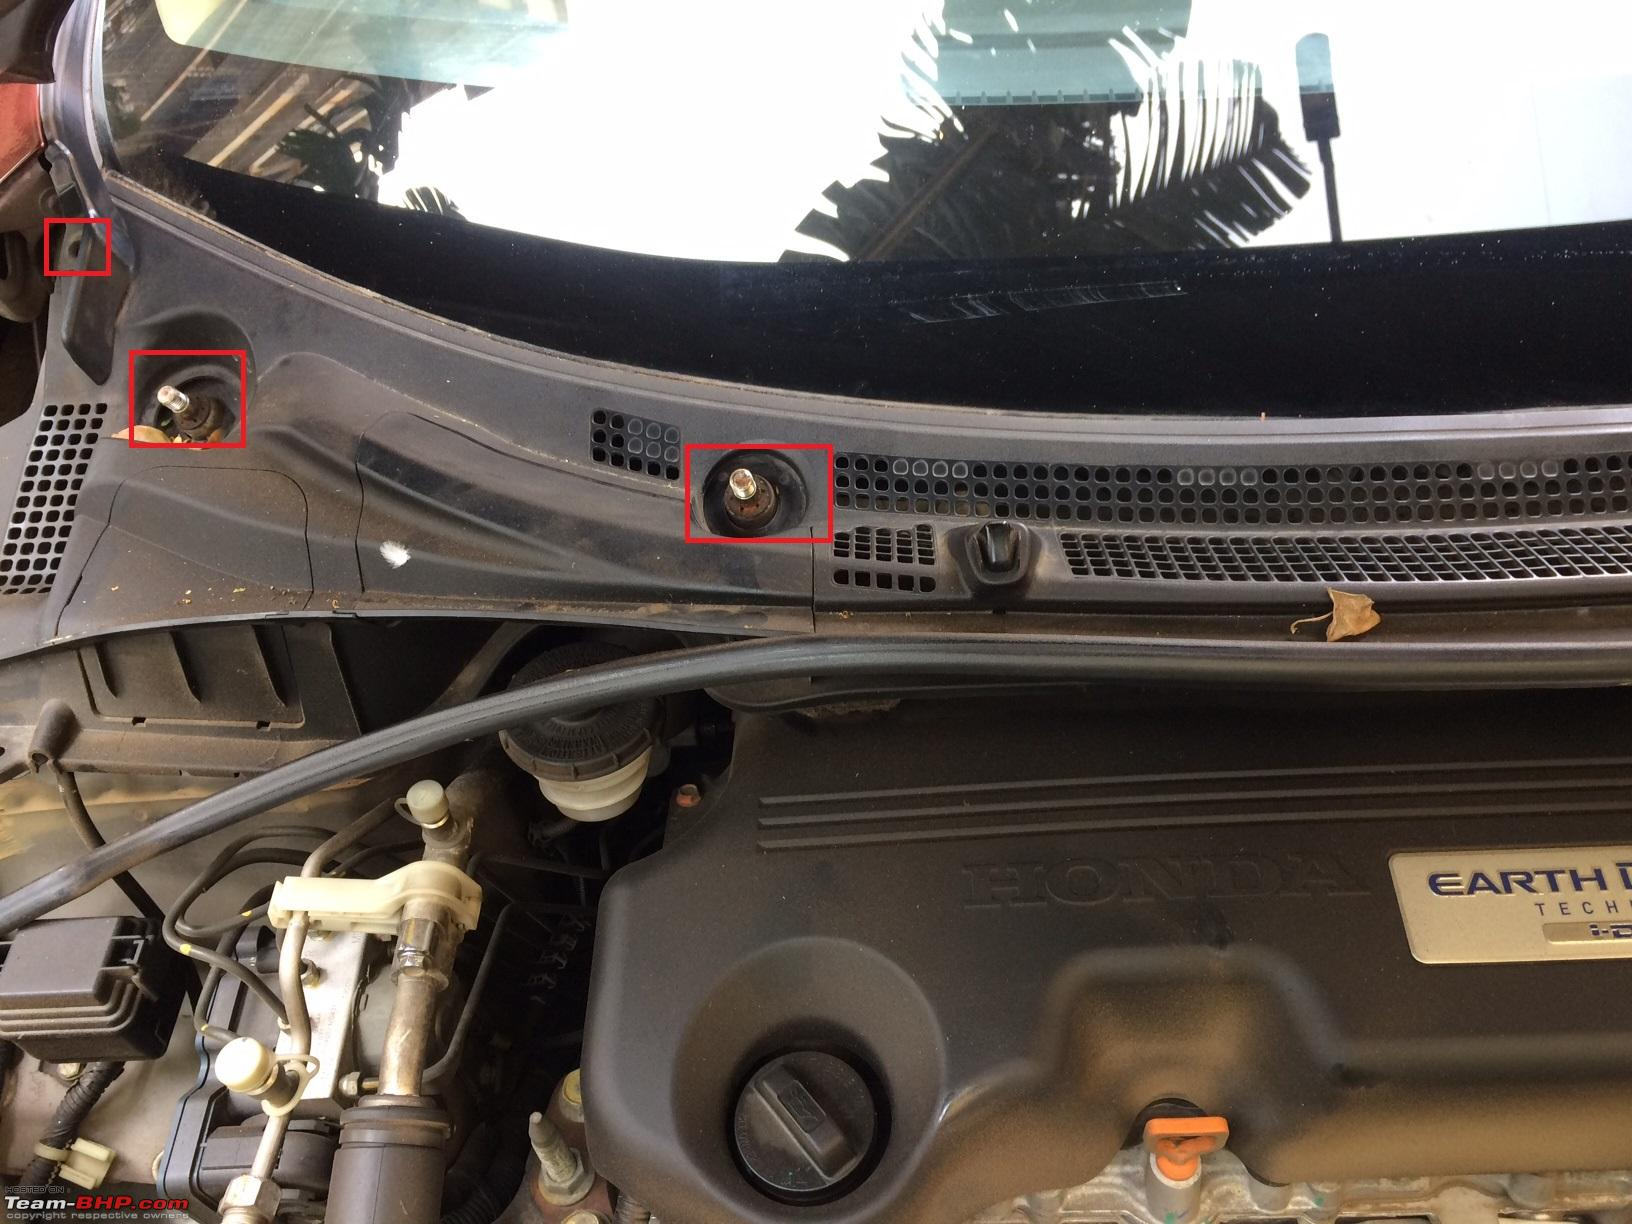 DIY: City cowl panel cleaning & the subterfuge of Honda